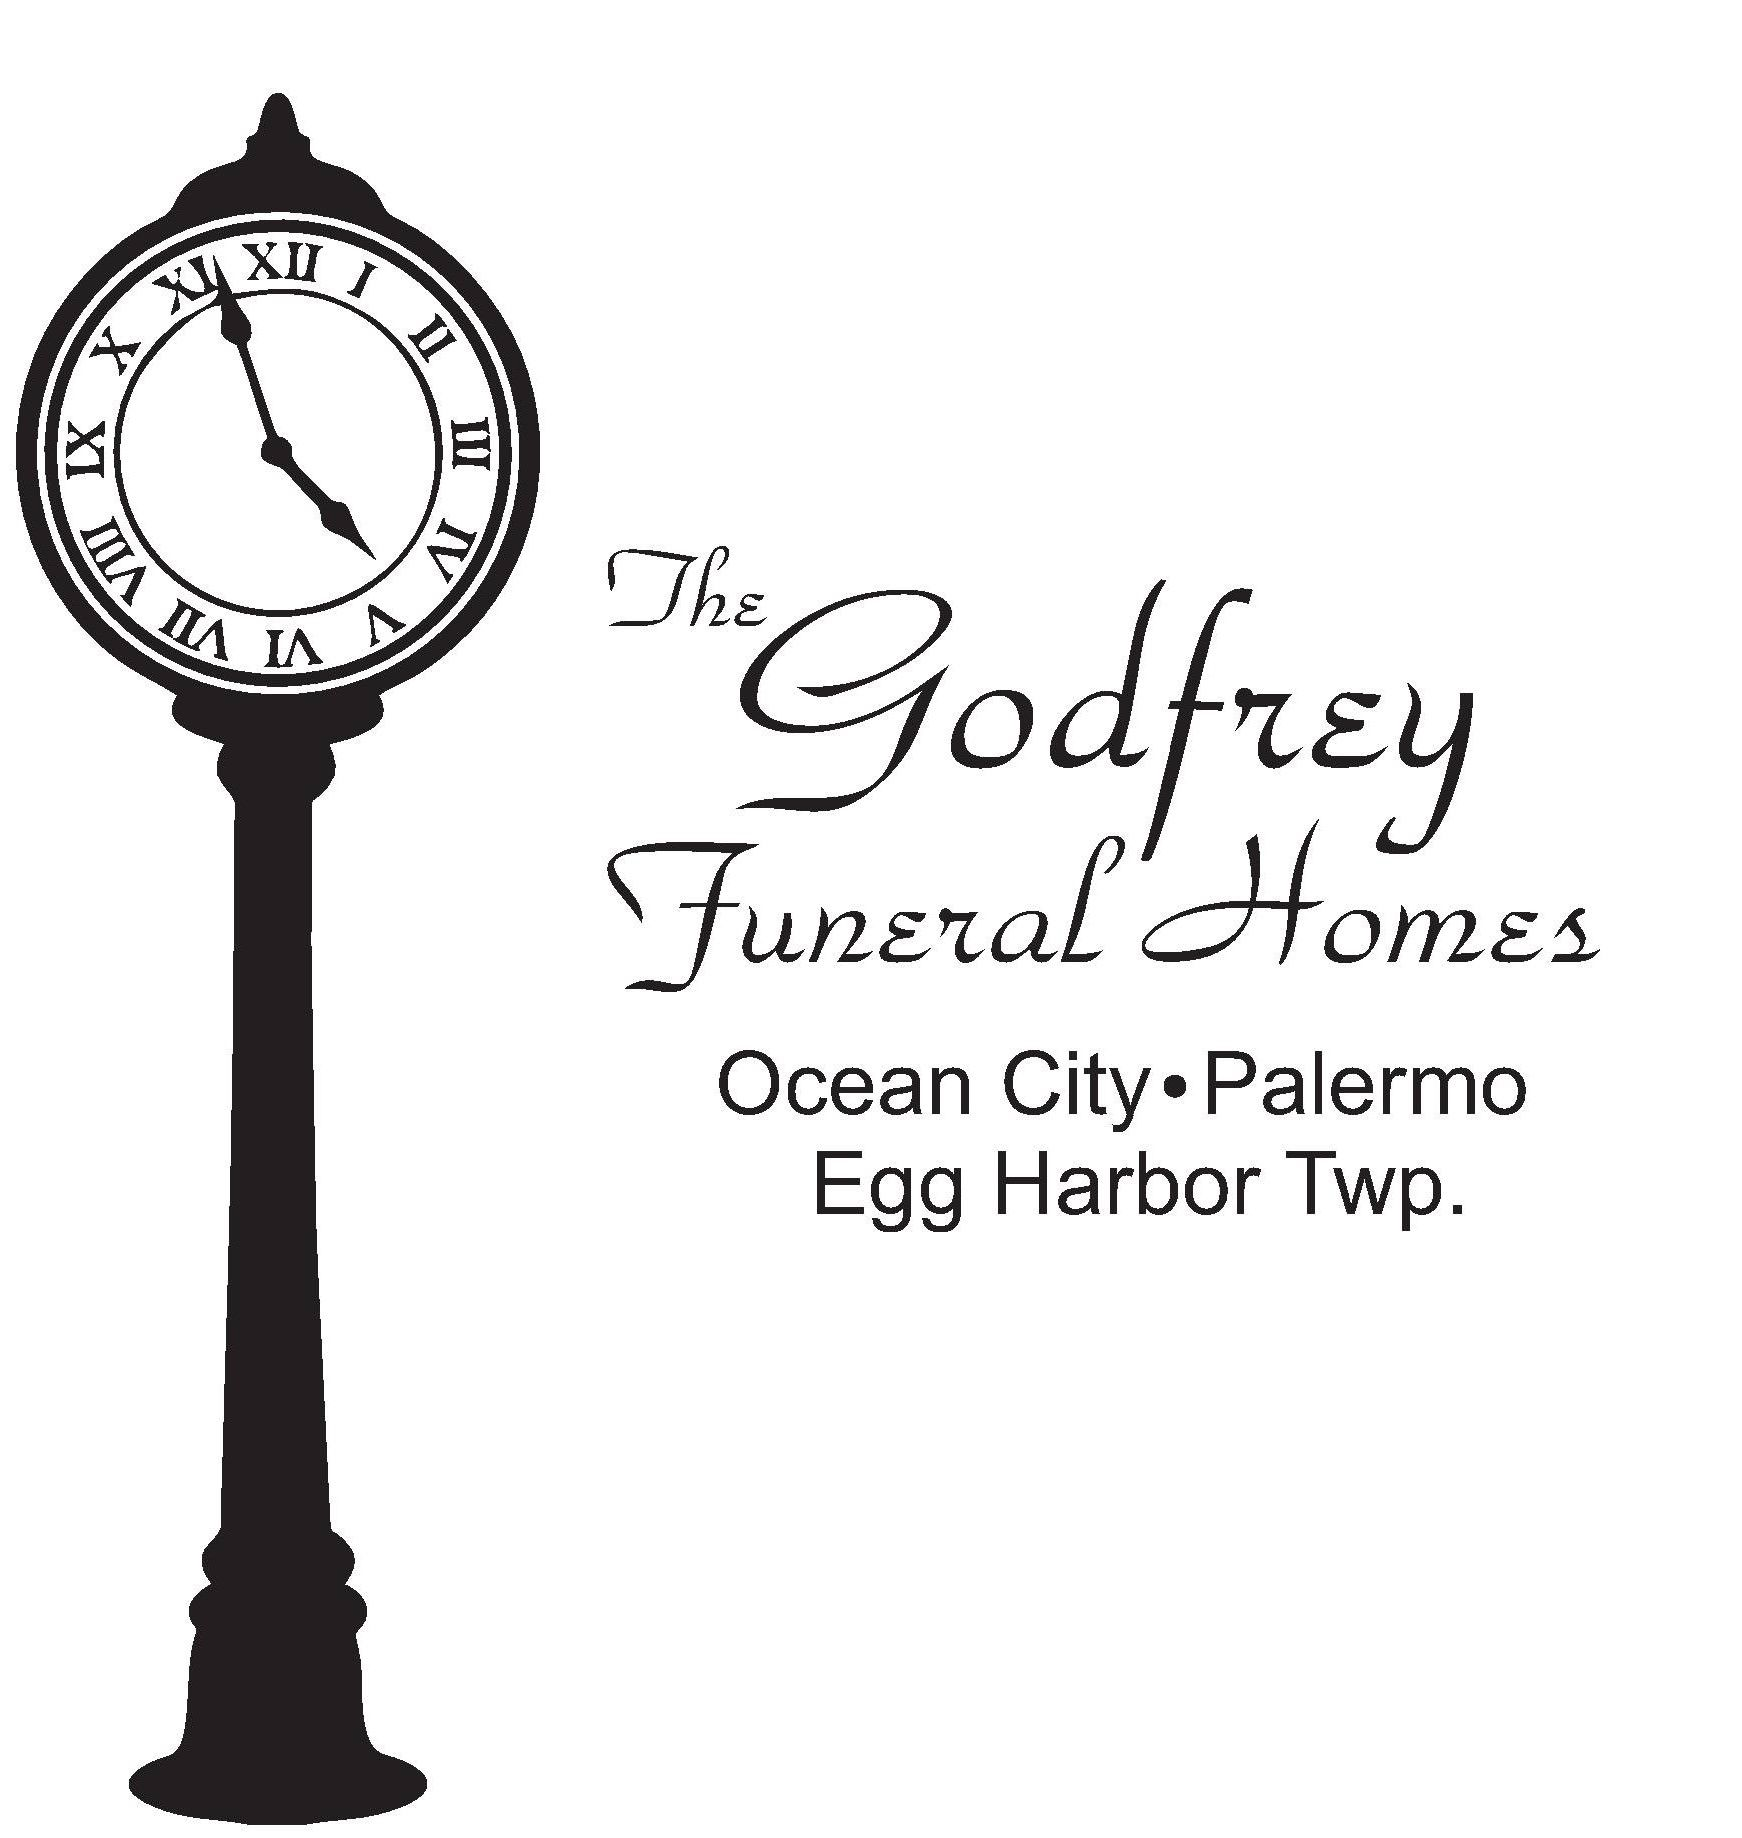 Godfrey Funeral Homes